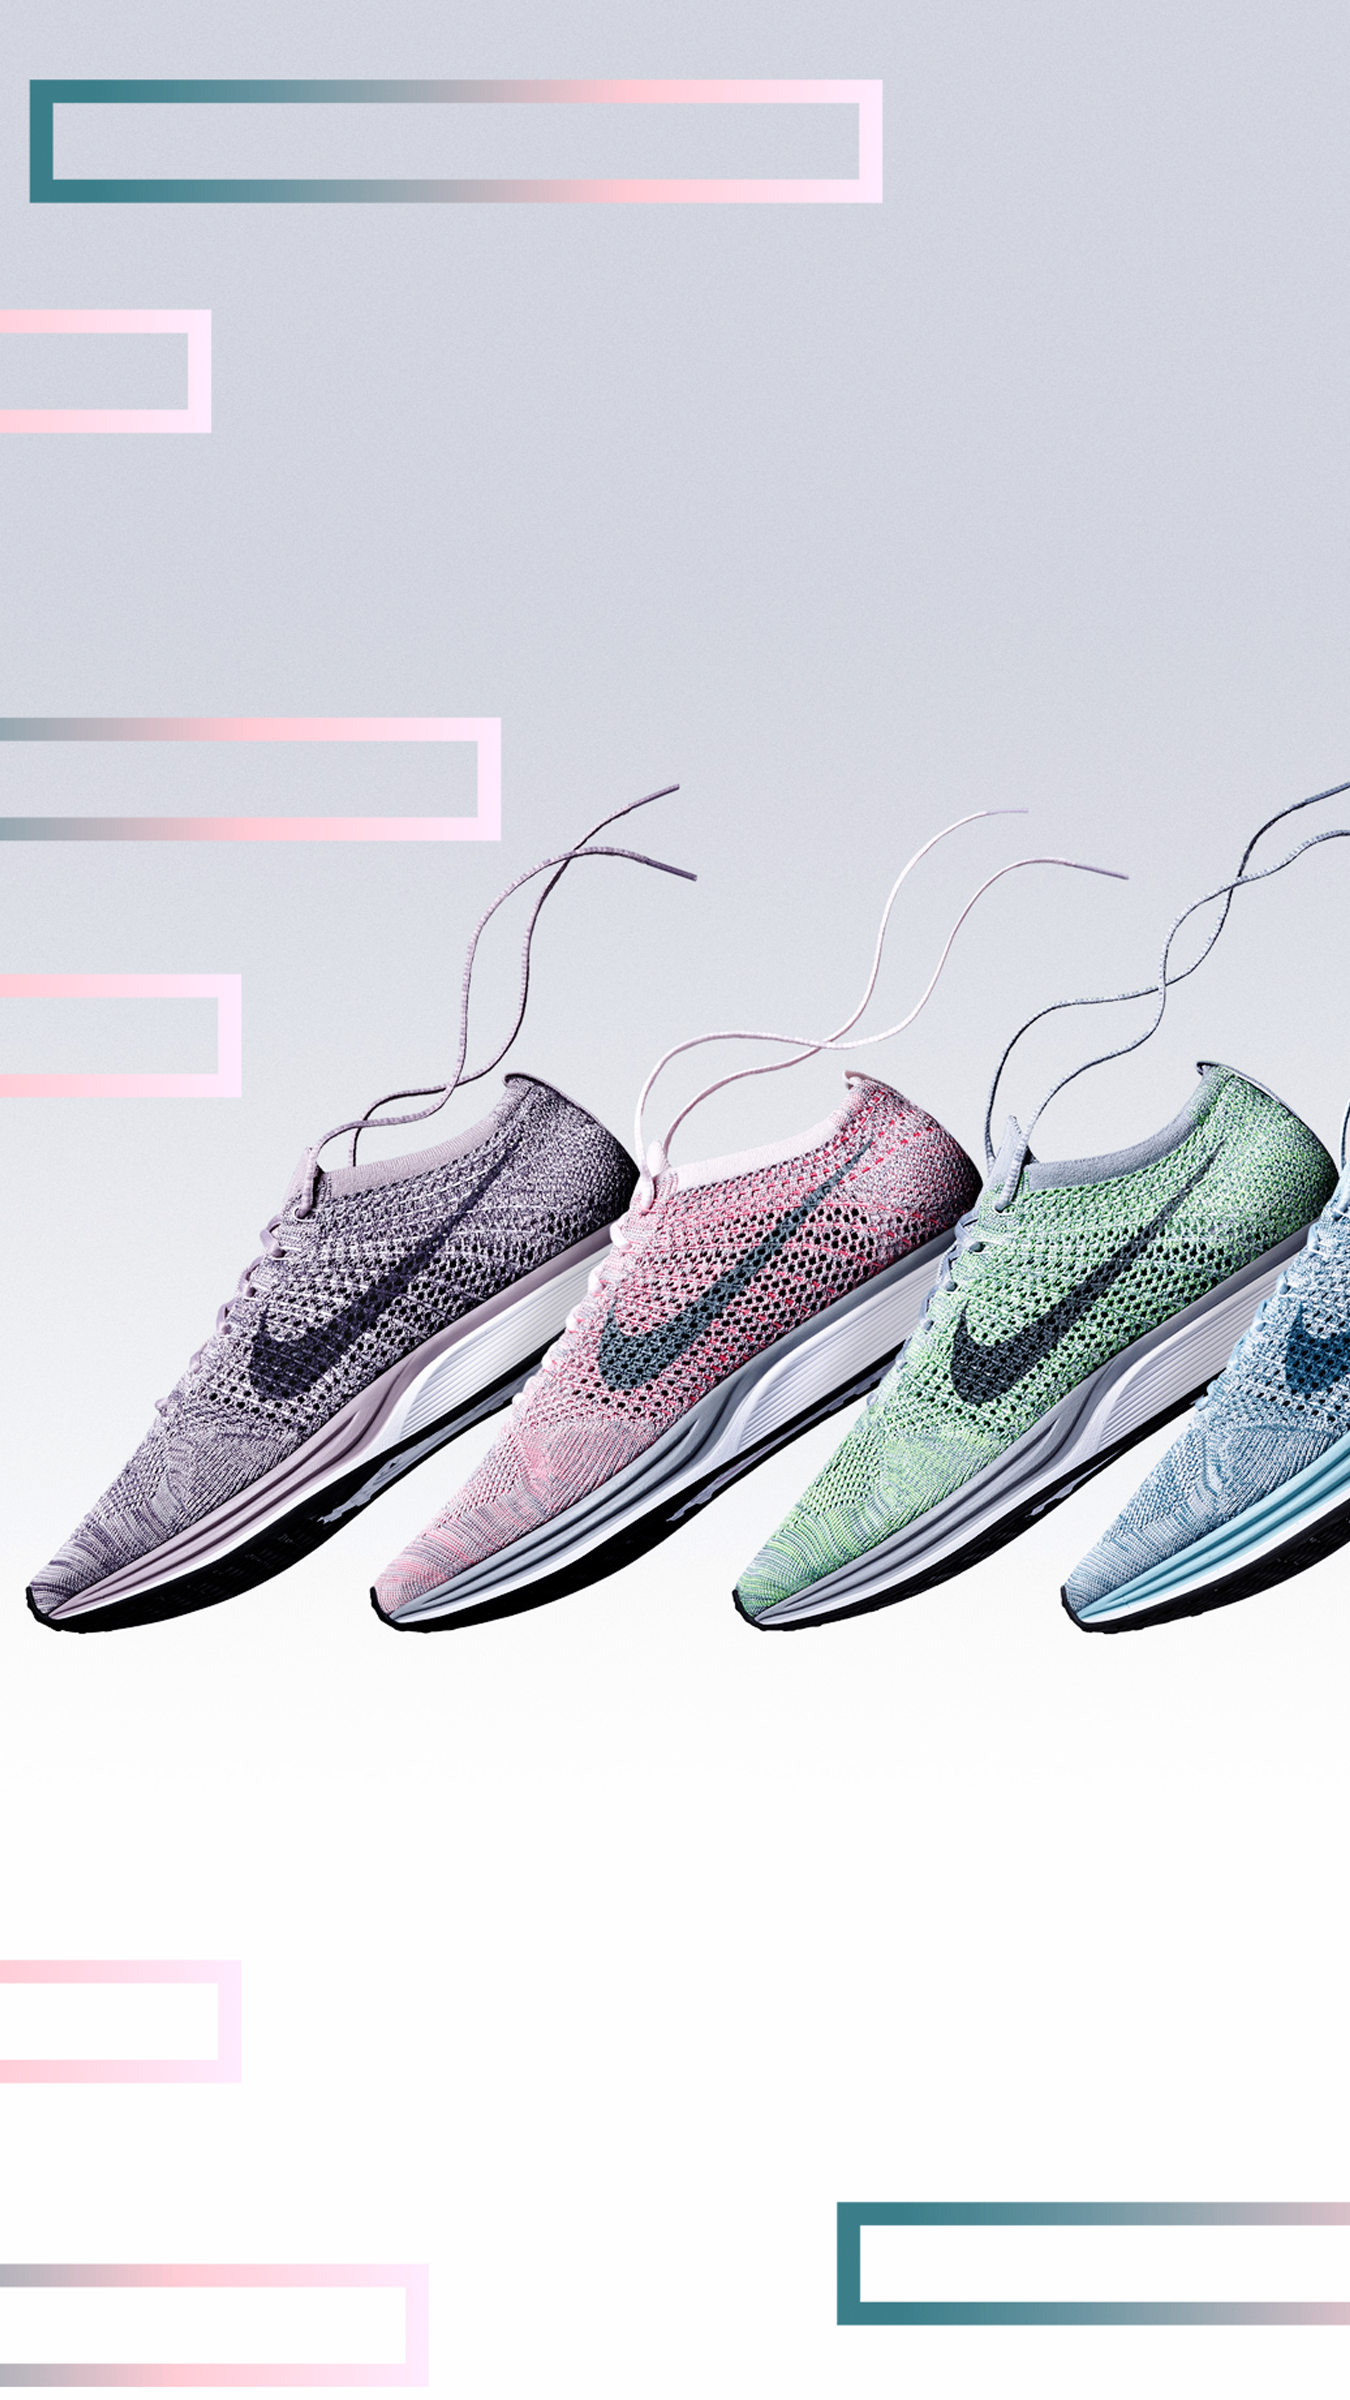 8c14156856768 order nike flyknit racer macaron pack on feet 79361 0cc15  where can i buy nike  flyknit racer sneaker new pastel colors collection 909e3 3a793